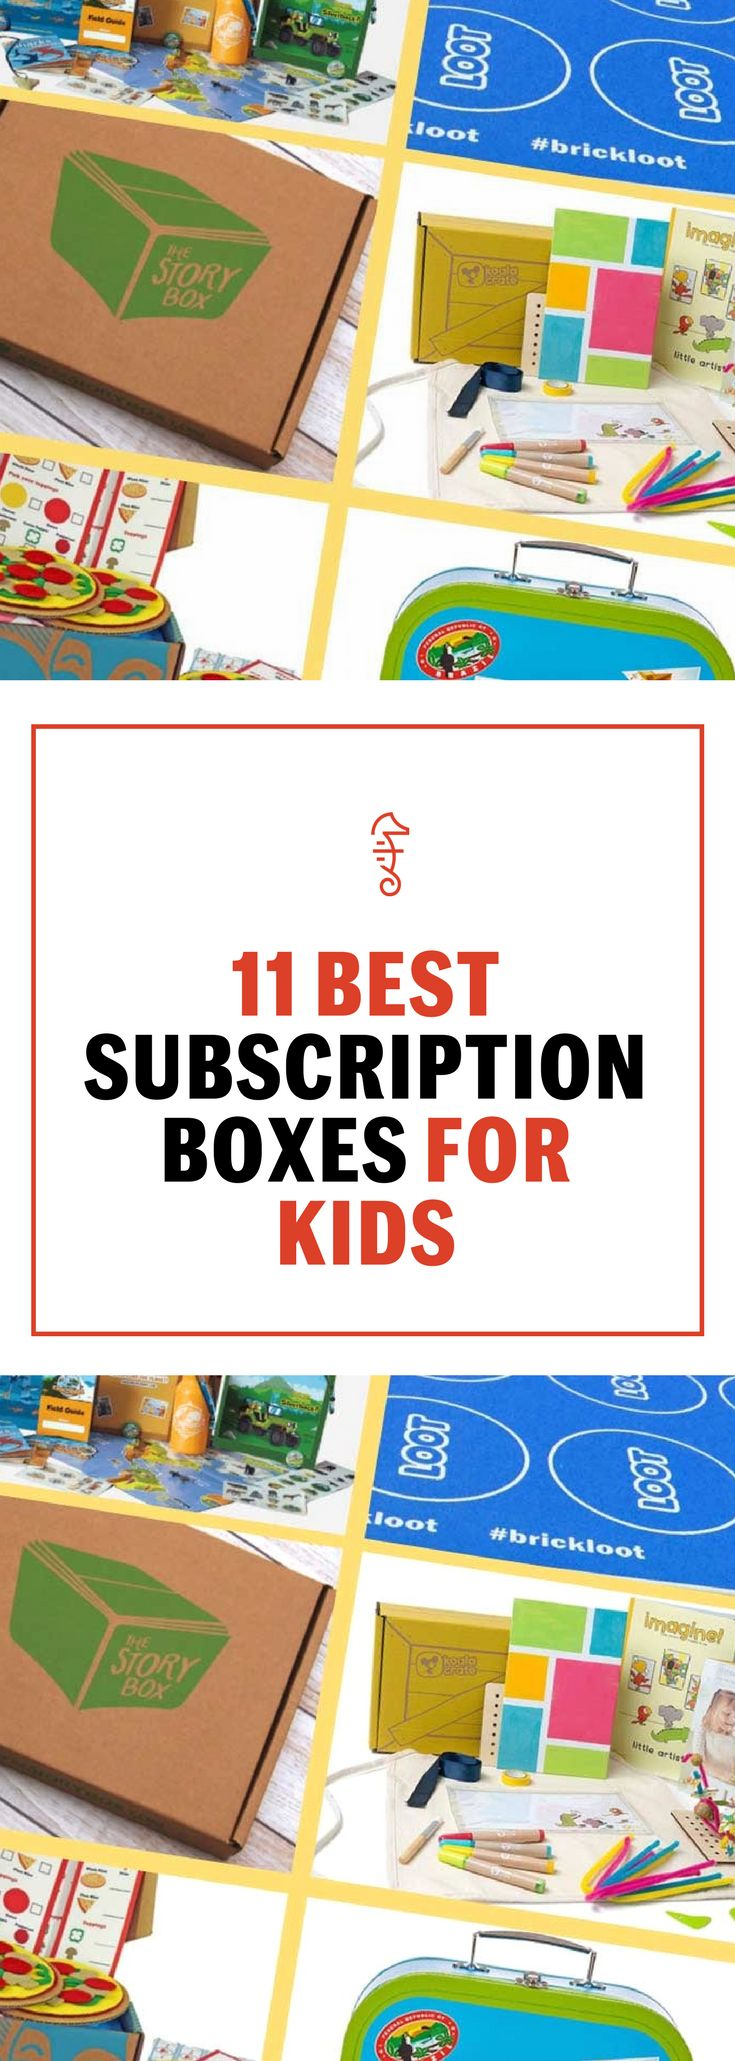 subscription boxes for kids, subscription boxes for kids monthly, subscription boxes for kids book, subscription boxes for kids activities, subscription boxes for kids toddler, subscription boxes for kids best